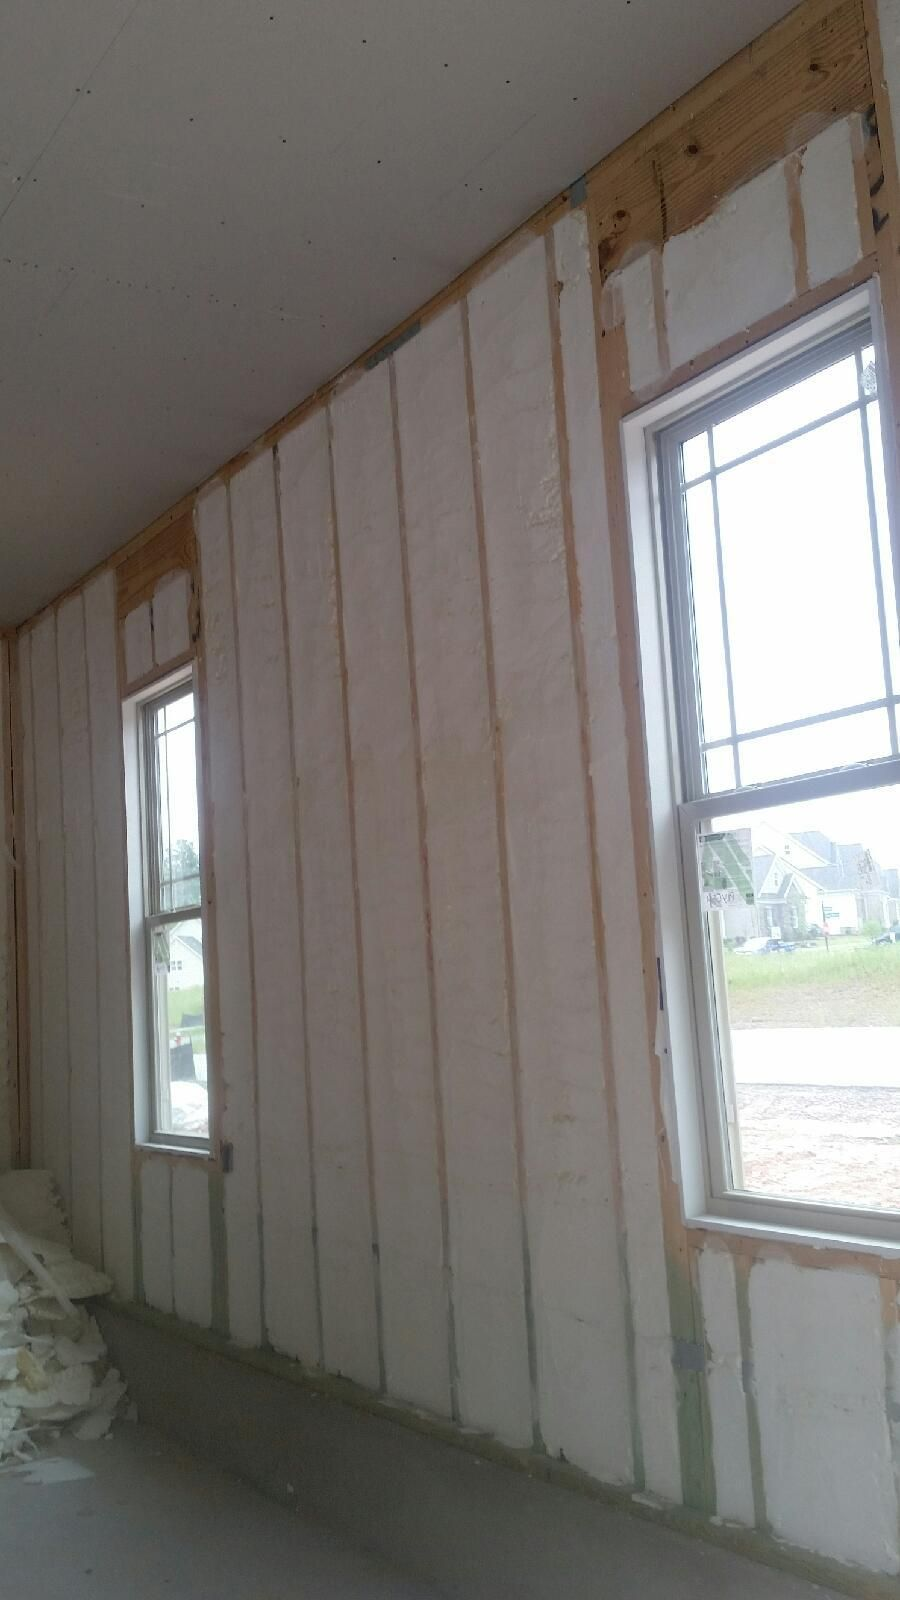 Spray foam insulation for house - Spray Foam Insulation On The Exterior Walls Of A Town House